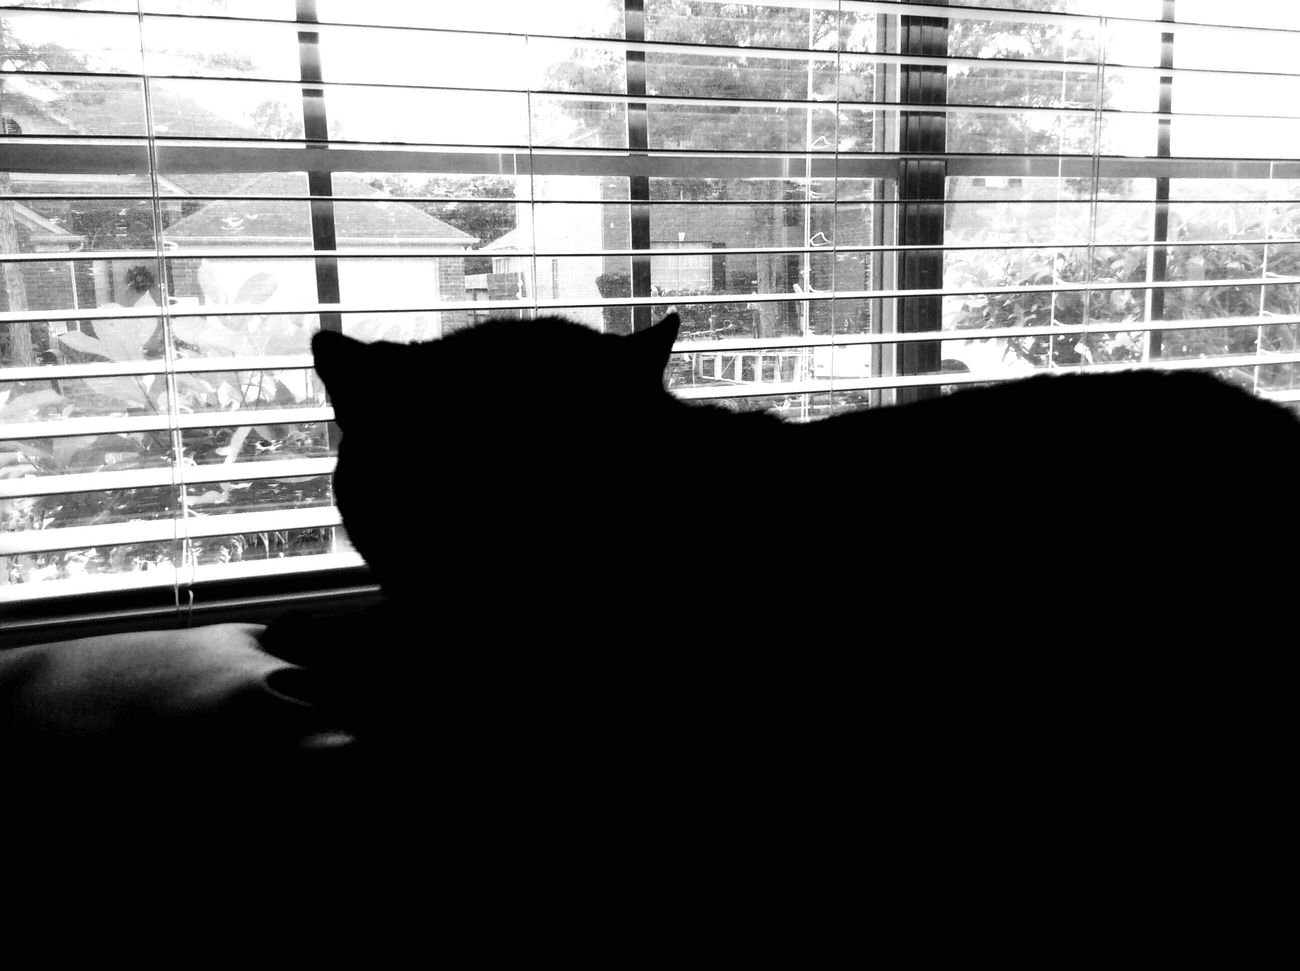 Happy Caturday Blackandwhite Photography Black Cat Black Cat, Window